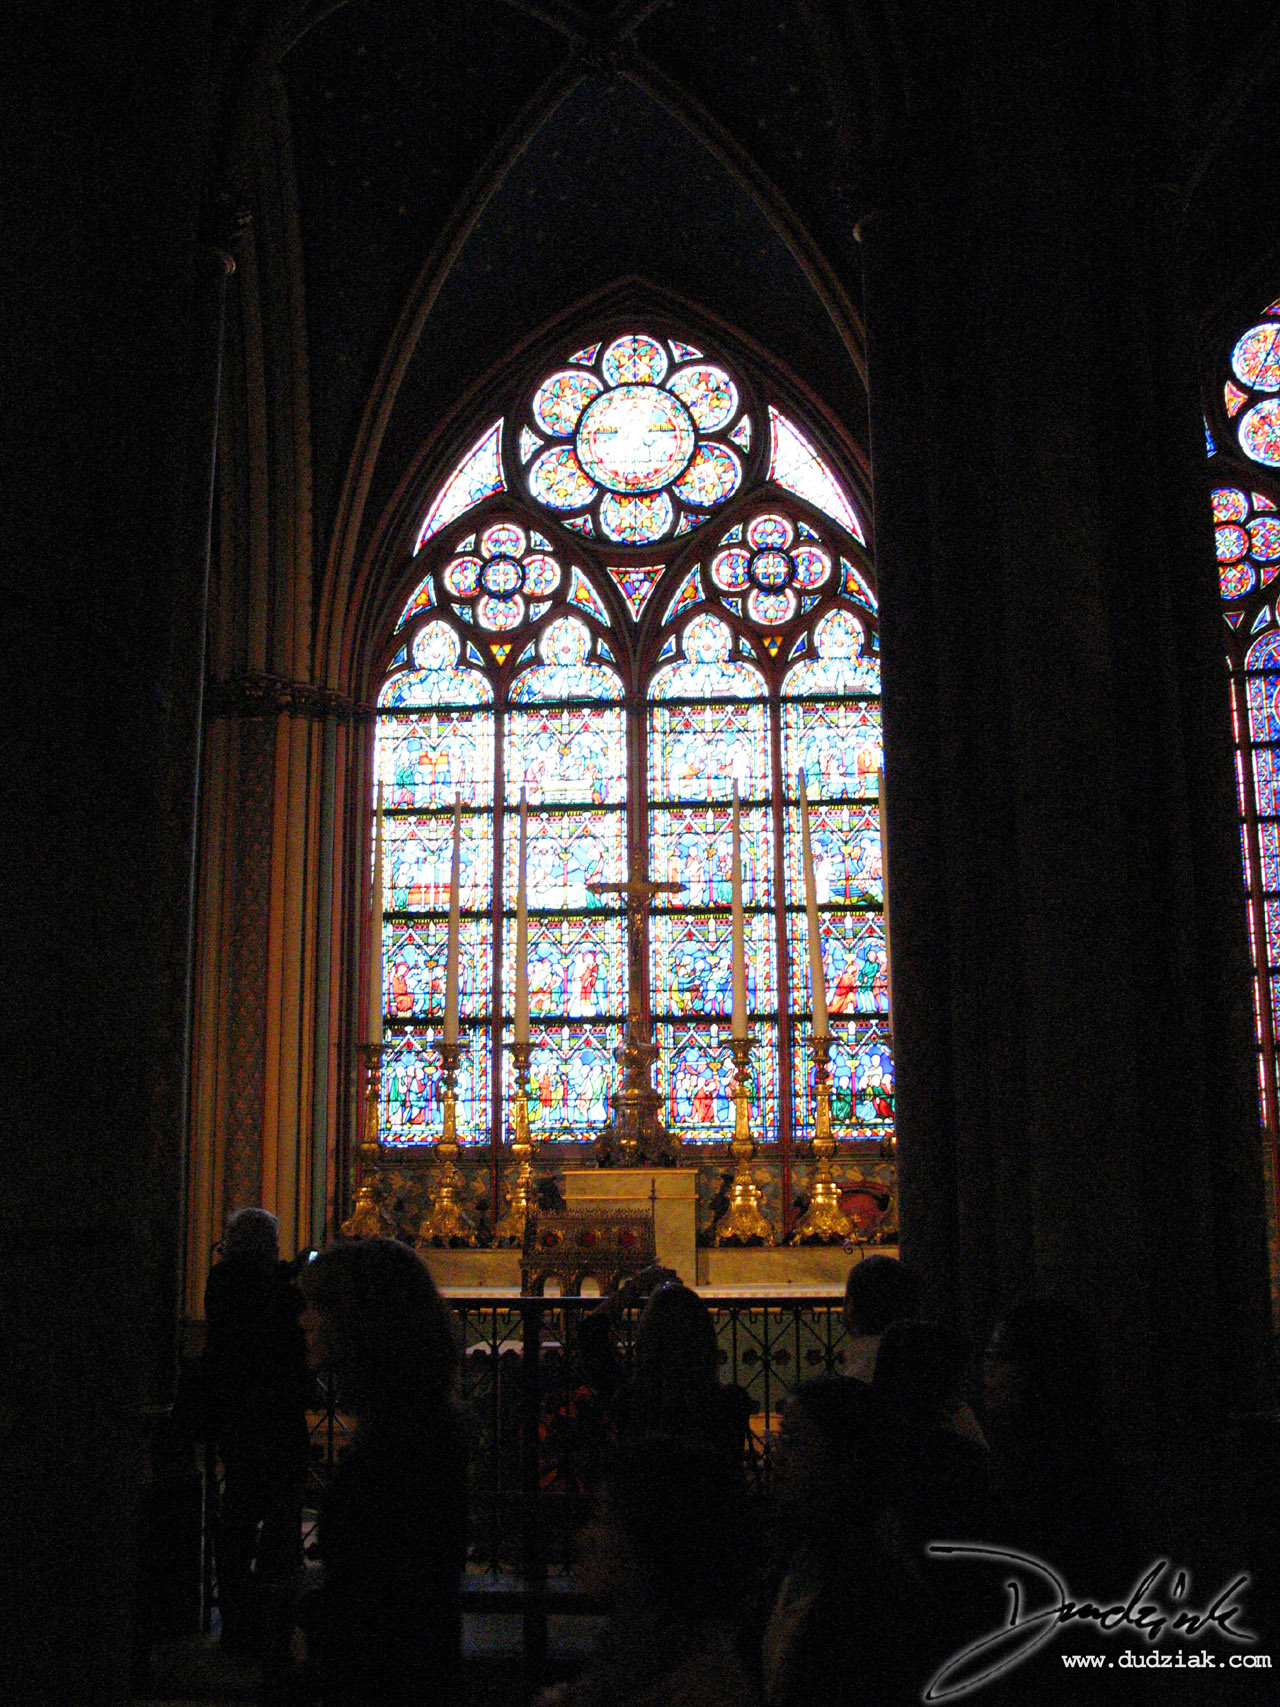 Stained-Glass Window,  France,  Paris,  Notre Dame Cathedral,  Notre Dame